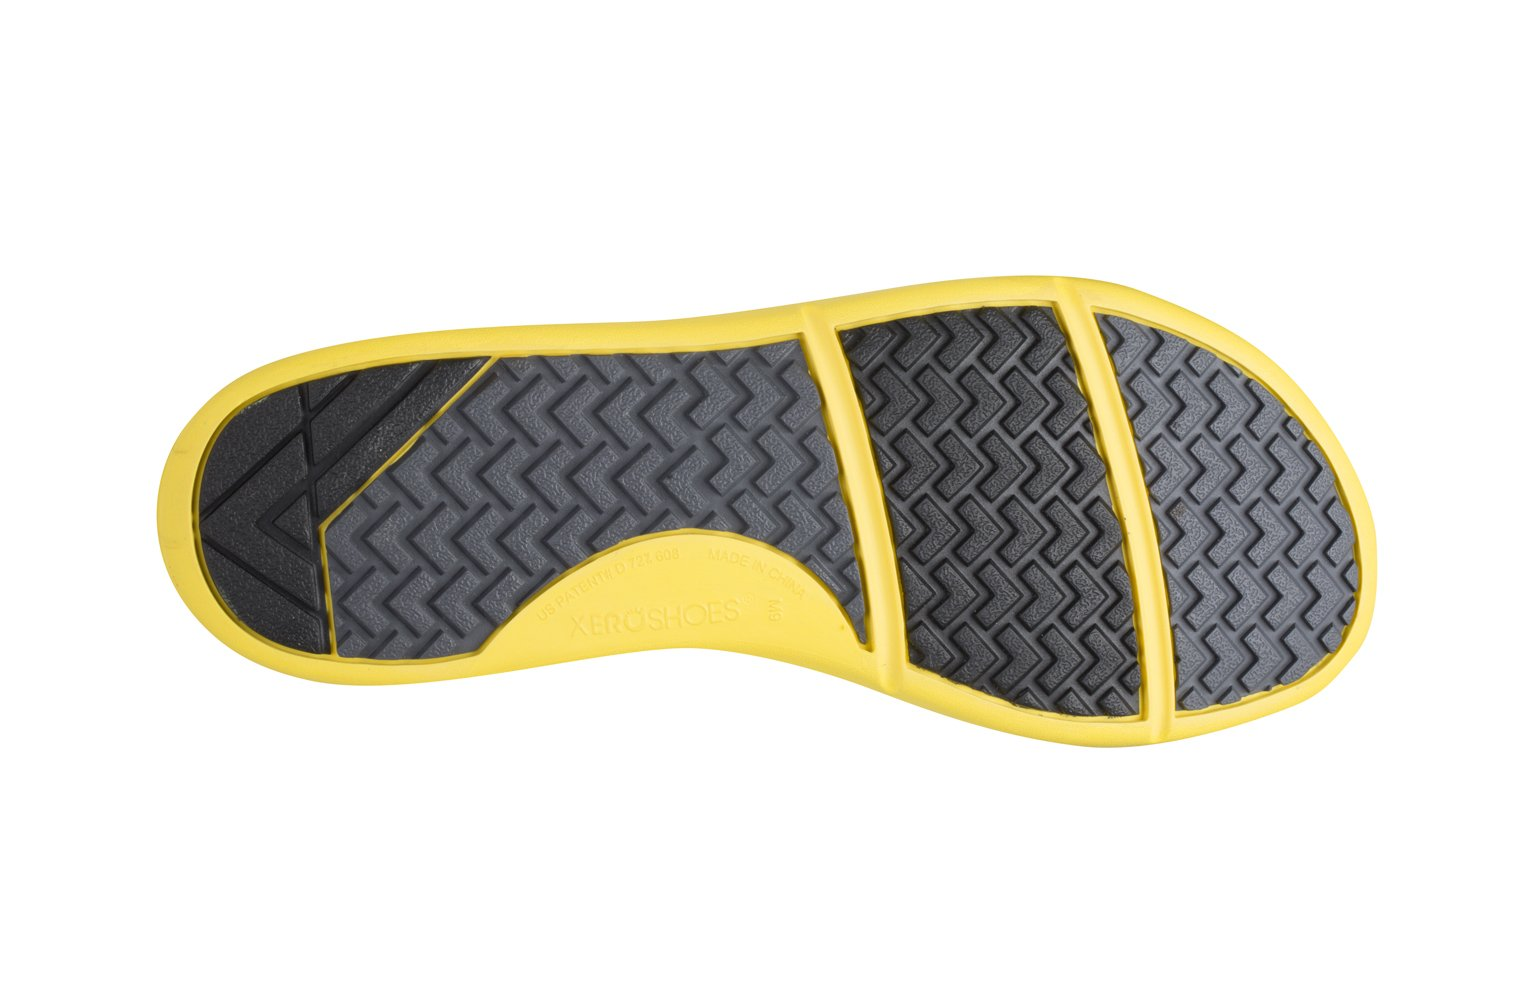 Xero Shoes Prio - Men's Minimalist Barefoot Trail and Road Running Shoe - Fitness, Athletic Zero Drop Sneaker - True Yellow by Xero Shoes (Image #3)